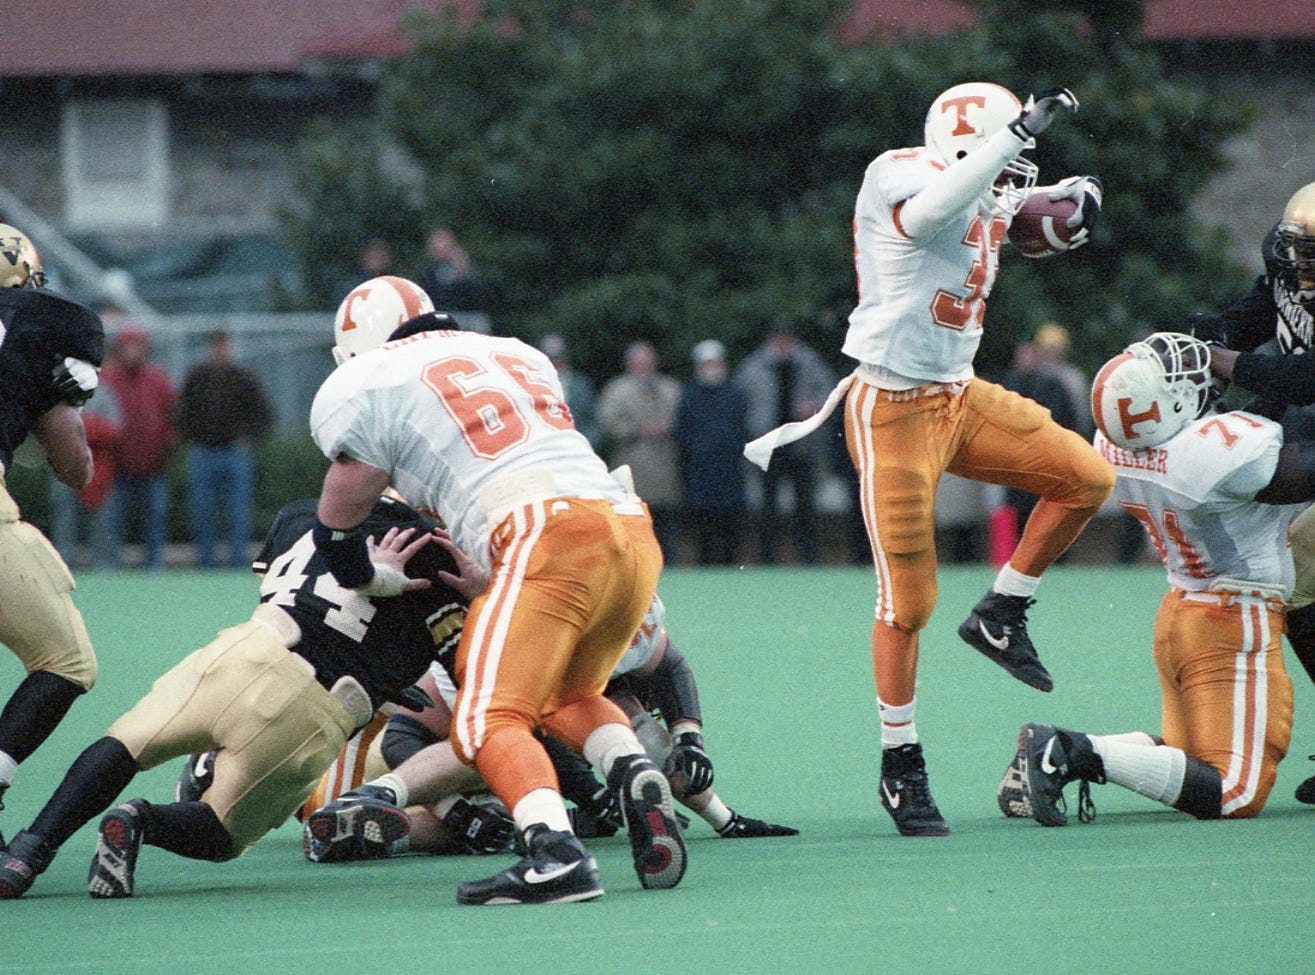 James Stewart stays on his toes as he weaves through the Vanderbilt defense on November 28, 1992.